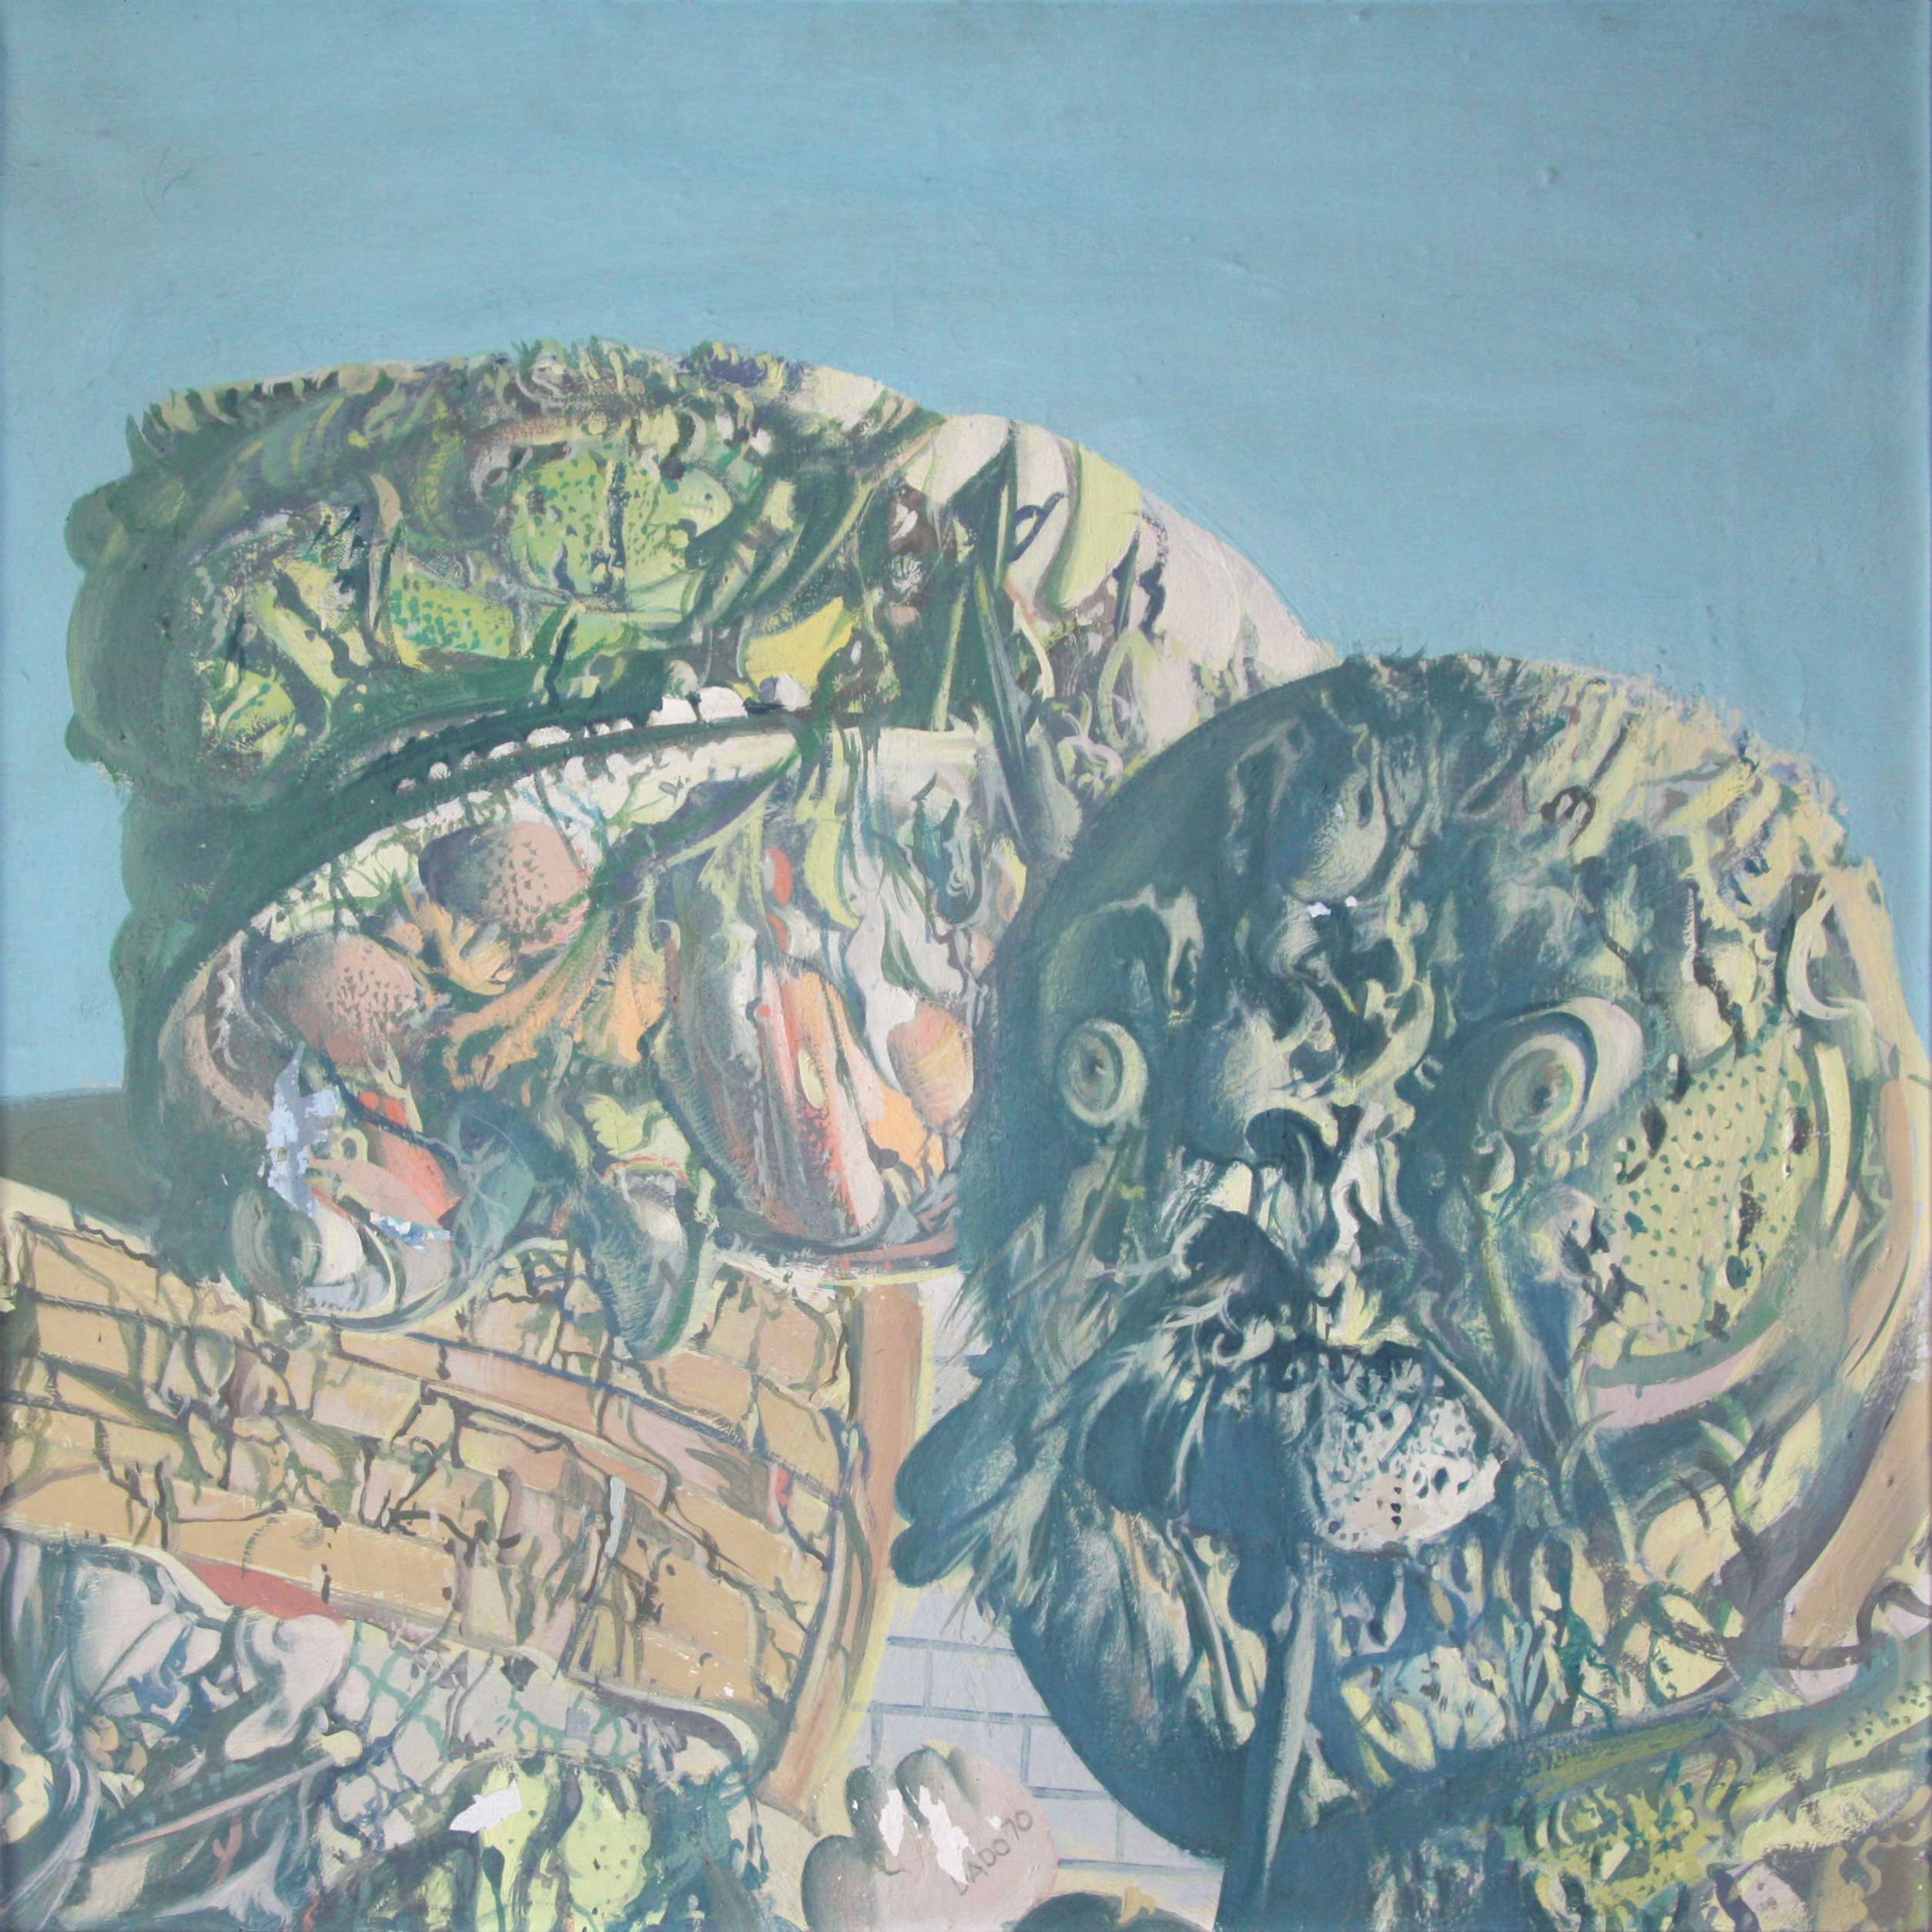 Dado's painting: Untitled, 1970